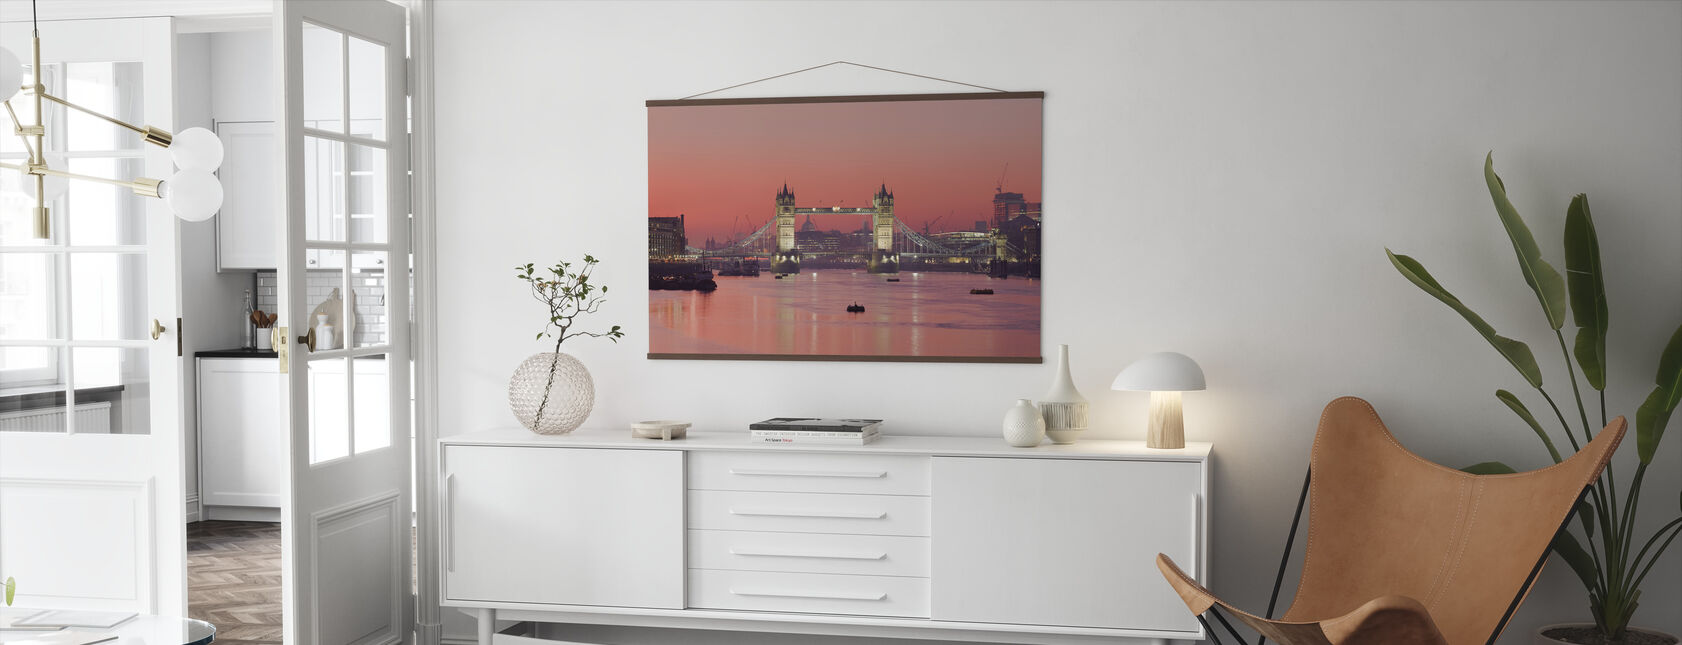 London Skyline in Sunset - Poster - Living Room